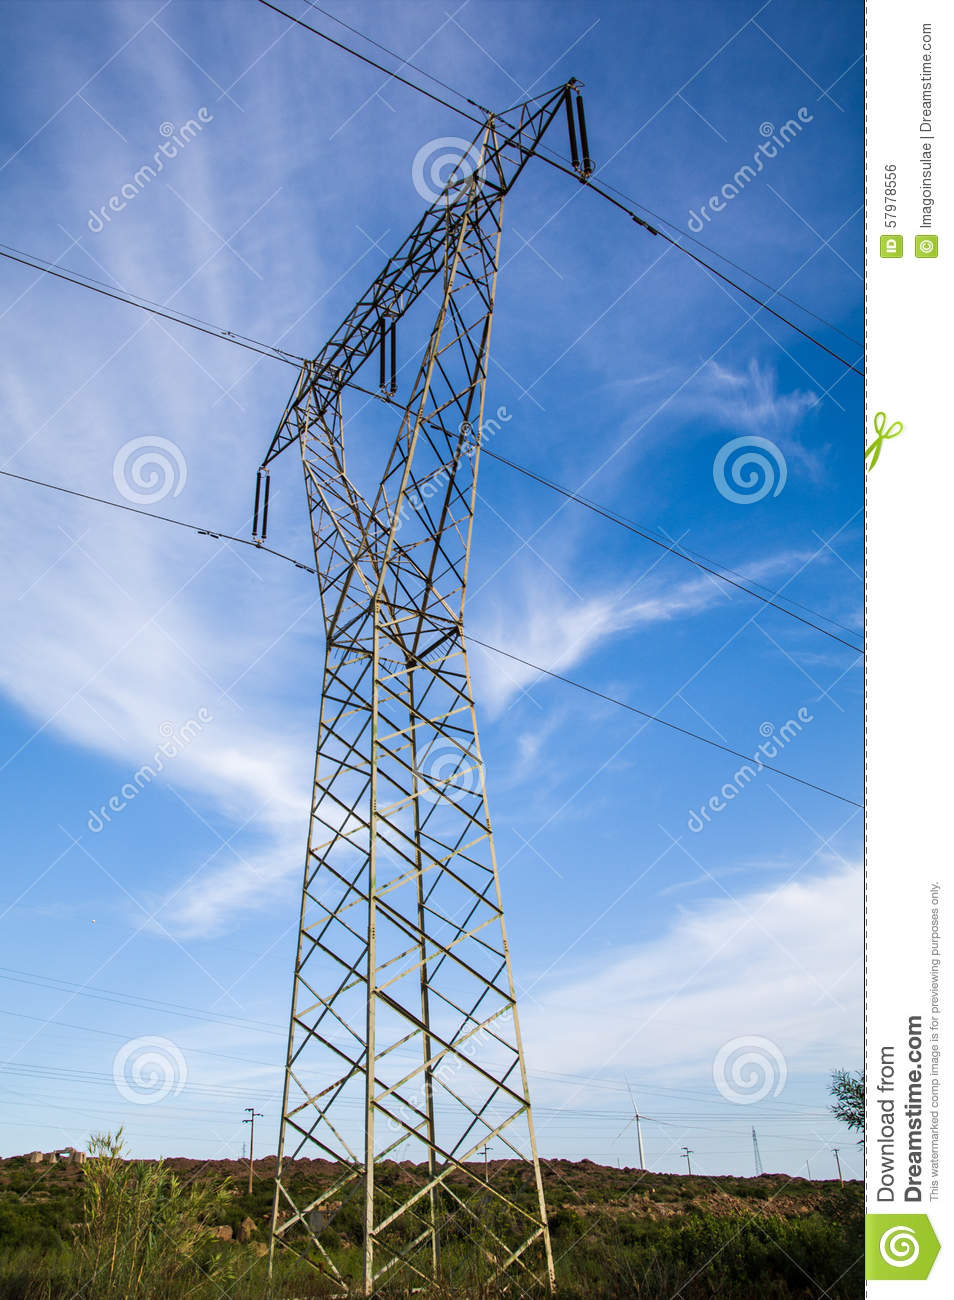 how to tell voltage of power lines